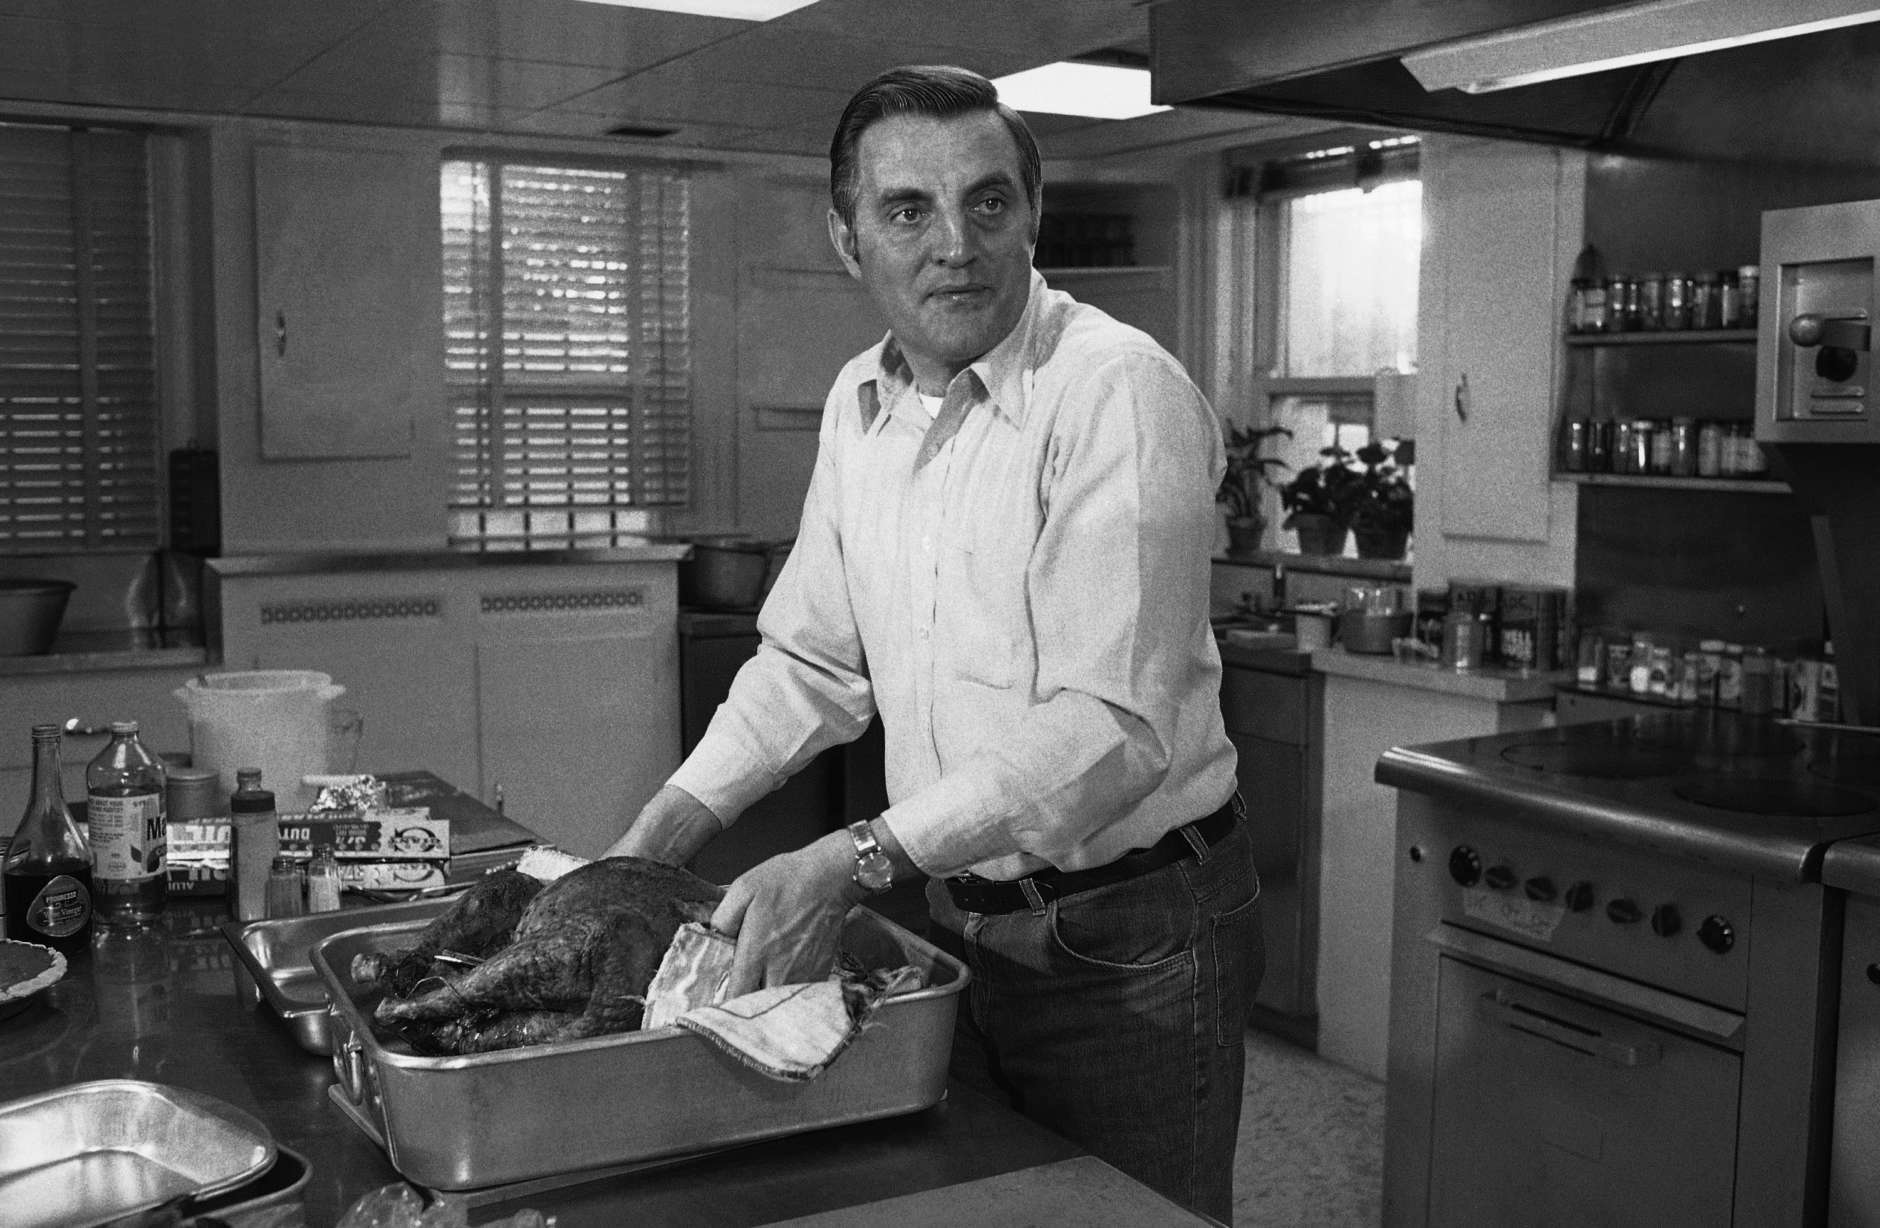 """U.S. Vice President Walter Mondale lifts his Thanks Giving turkey from the broiler, Thursday, Nov.11, 1977 in the kitchen of his Washington residence. """"Every Thanksgiving,"""" Mondale stated, """"I make the turkey and let my wife sleep."""" (AP Photo)"""